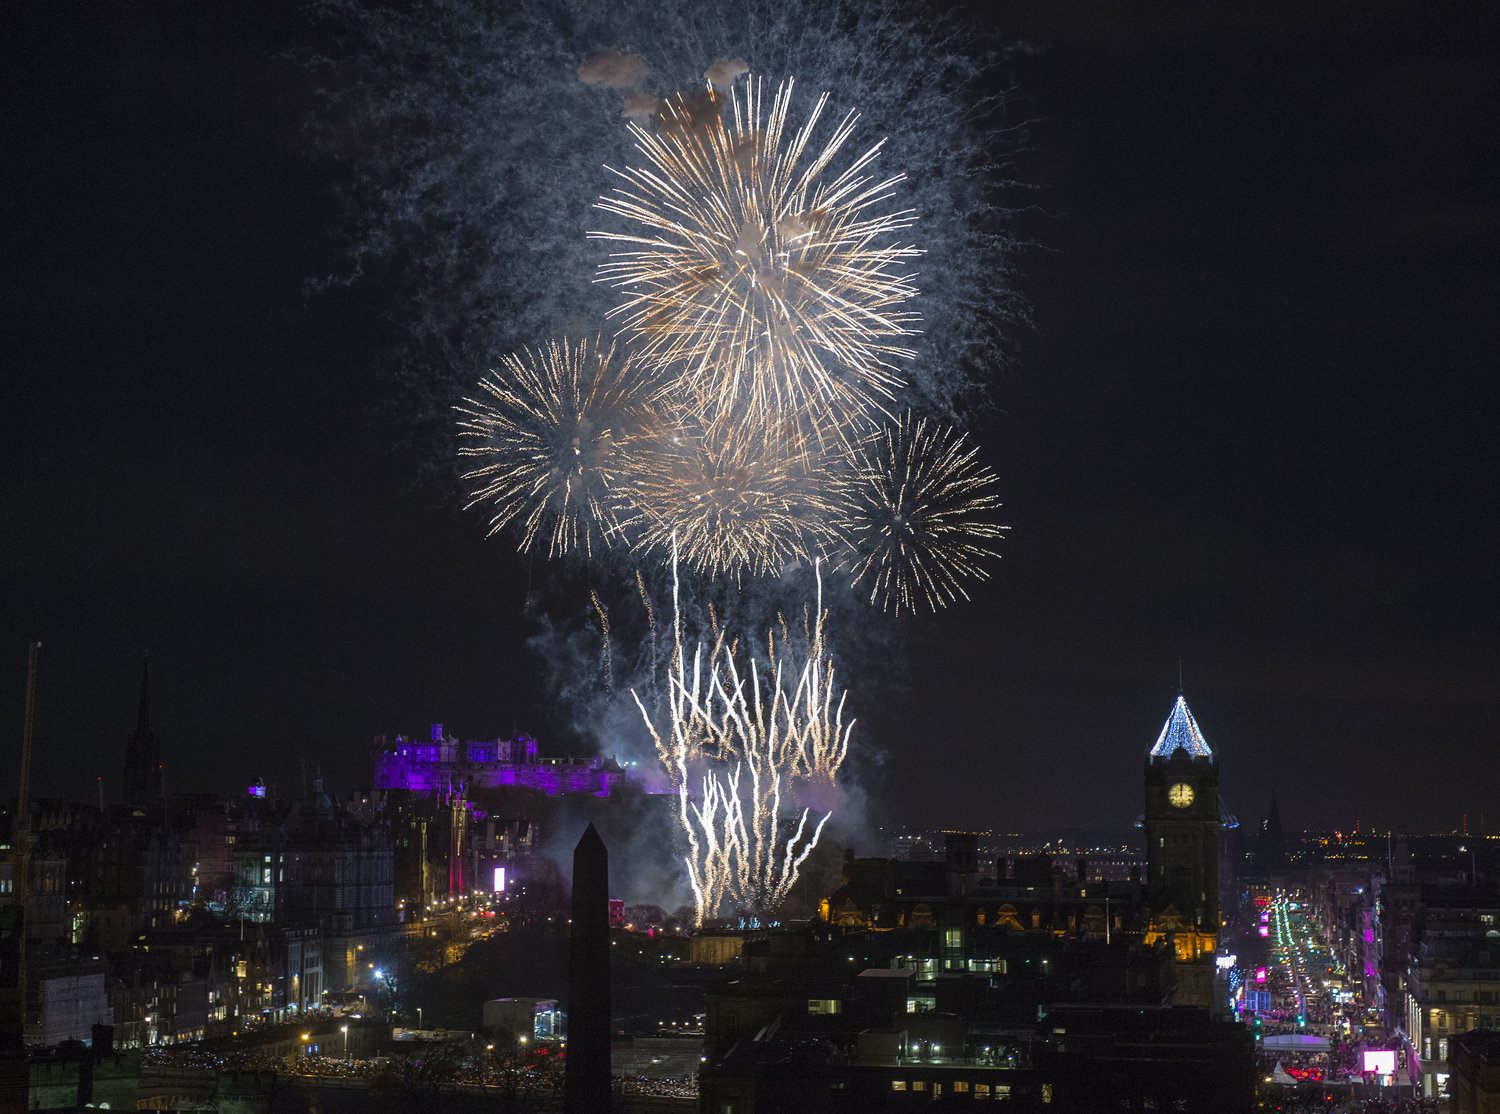 EDINBURGH'S HOGMANAY 2018 - MIDNIGHT NEW YEAR FIREWORKS DISPLAY PHOTO SOURCE: THE CORNER SHOP PR